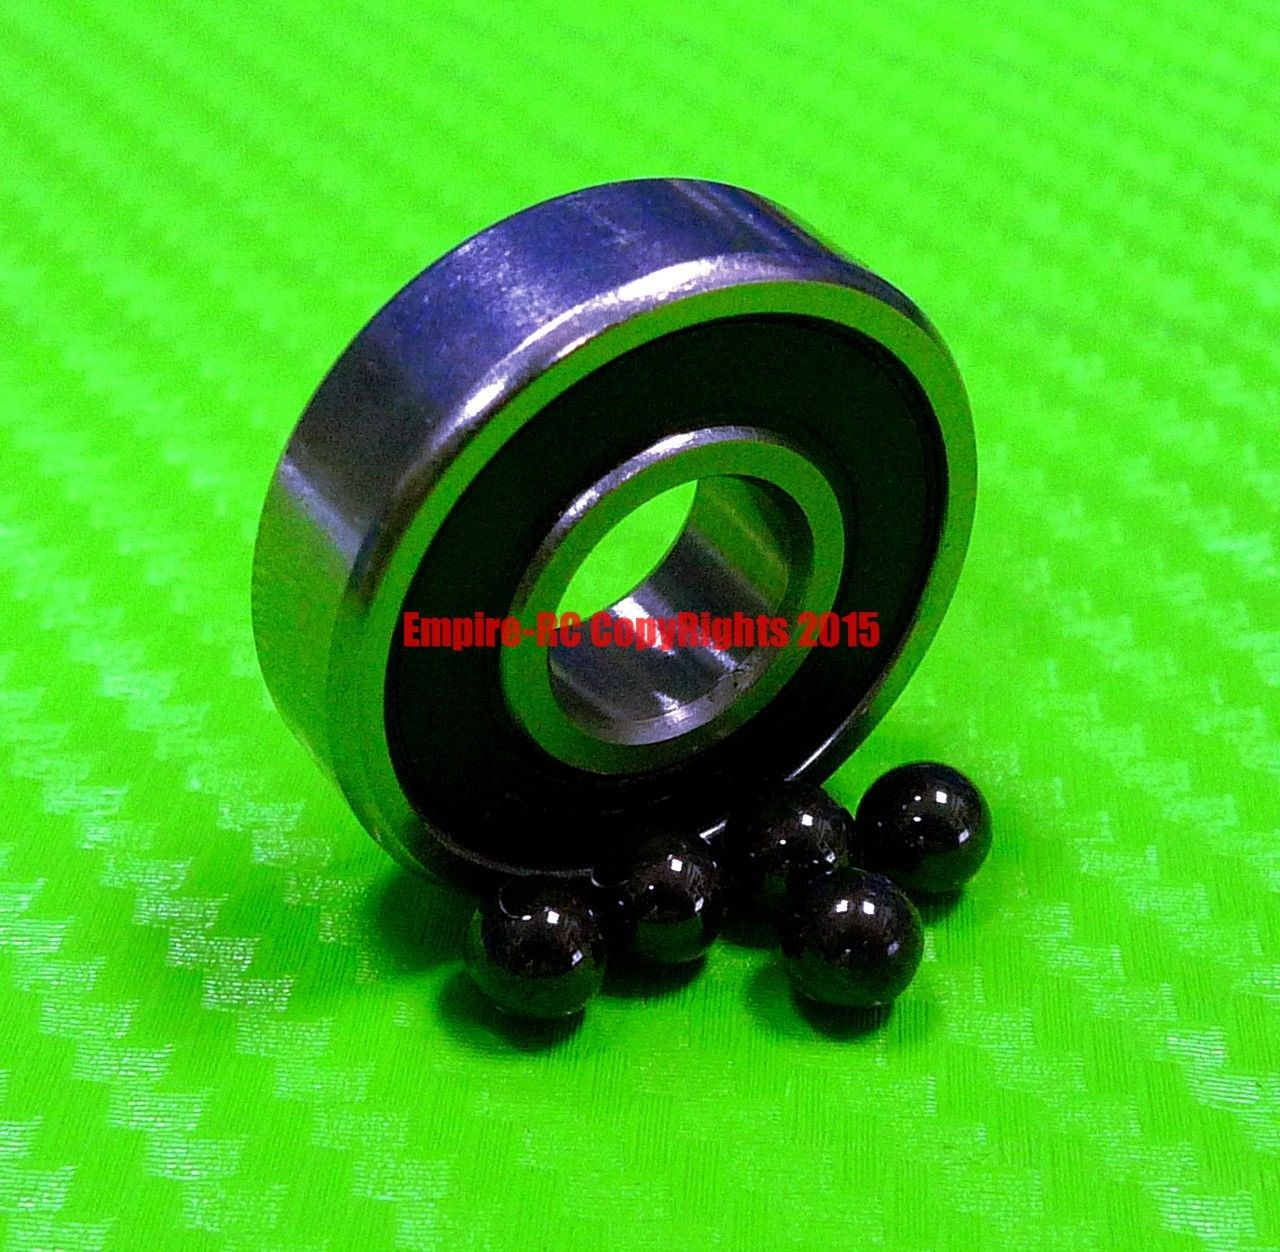 high temperature [QTY 4] (12x24x6 mm) S6901-2RS Stainless HYBRID CERAMIC Ball Bearings BLK 6901RS